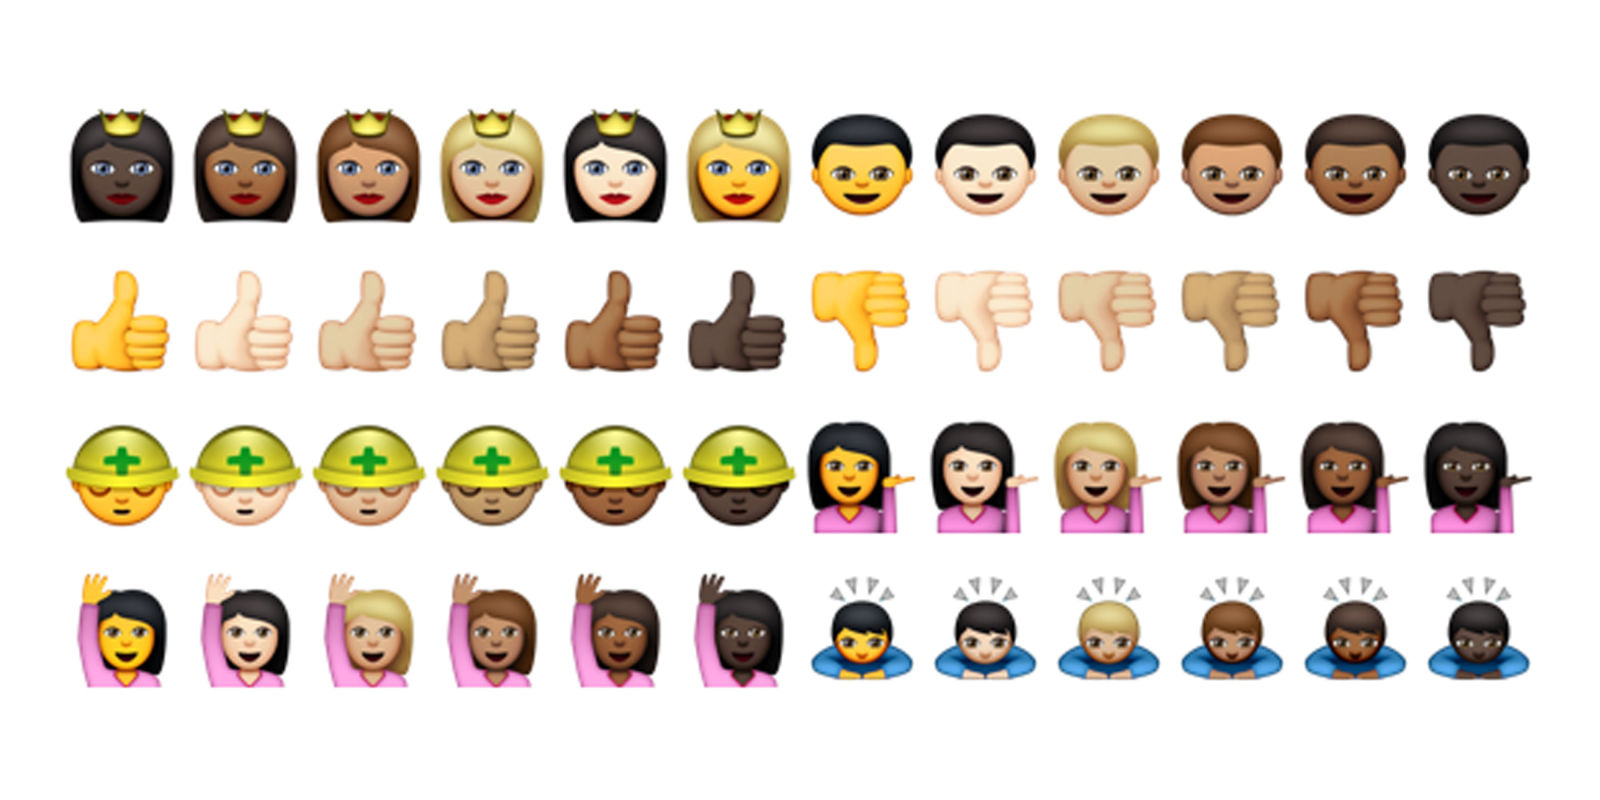 new emojis with different skin tones